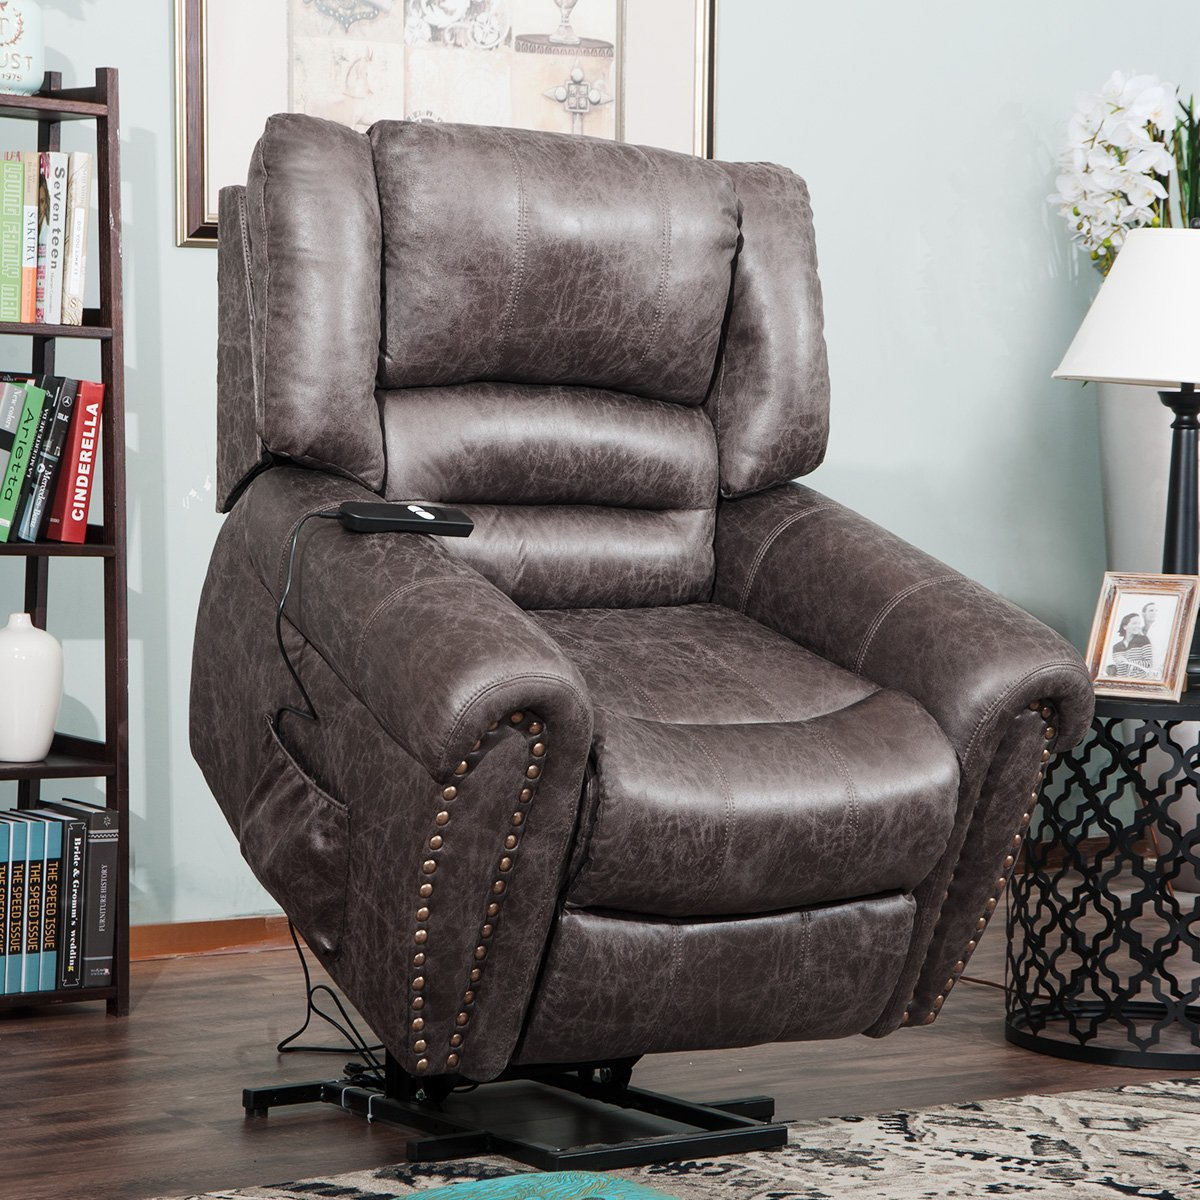 Harper&Bright Designs Smoky Brown Wilshire Series Heavy-Duty Power Lift Recliner Chair, Built-in Remote and 2 Castors, by Harper & Bright Designs